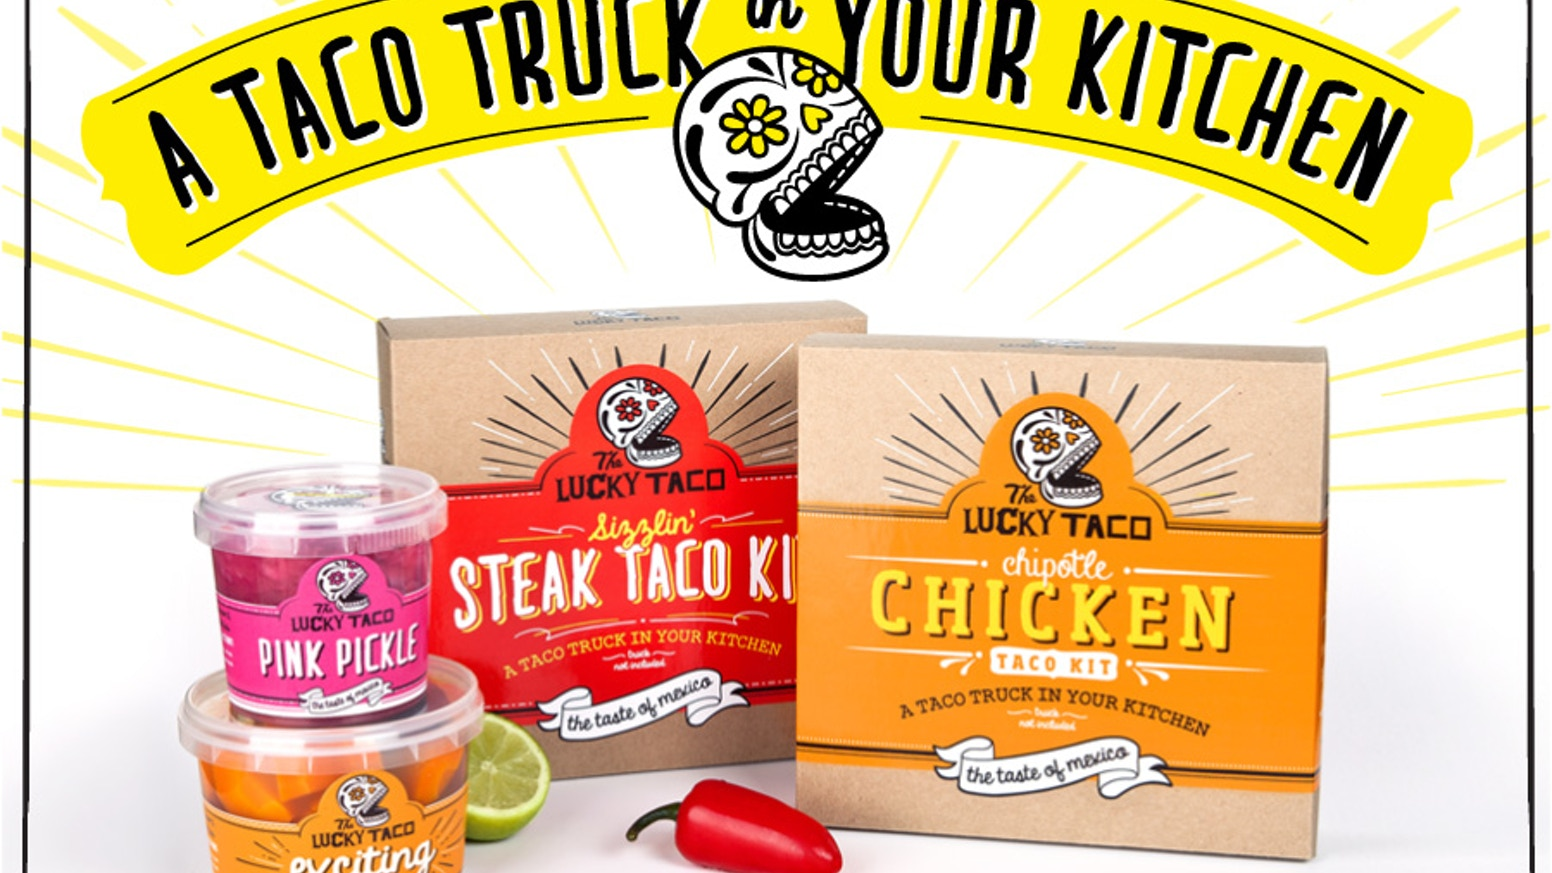 Lucky Taco Kits are the fresh, tasty & authentic alternative to what's out there. Enjoy Lucky Tacos at home - any night of the week!